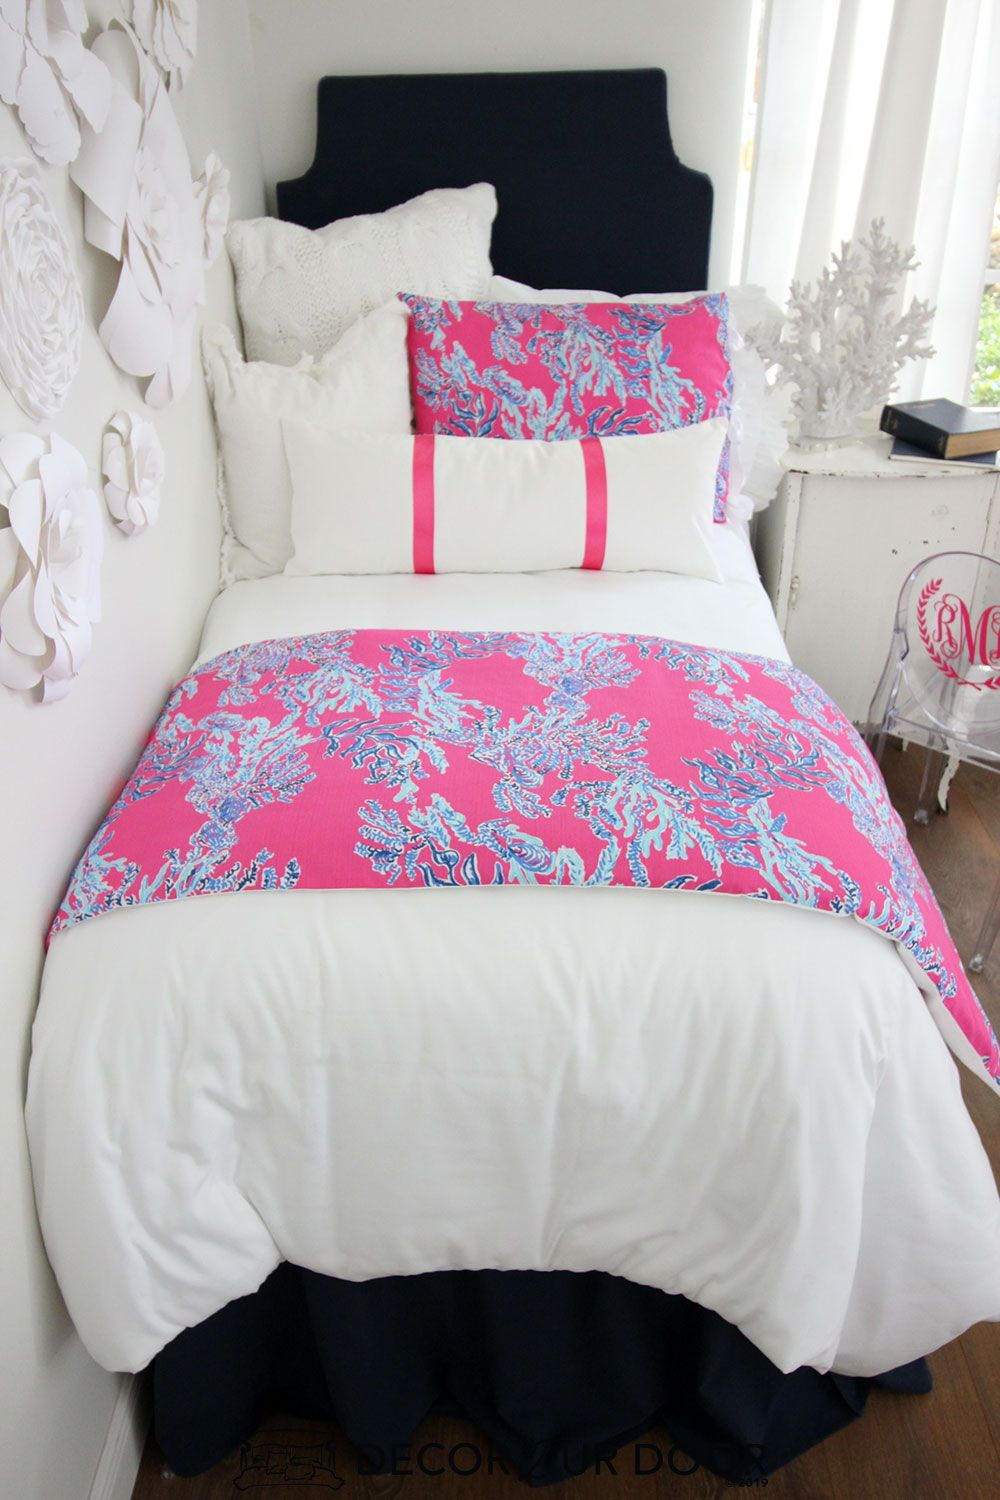 Lilly Coral Print Dorm Bedding Set images